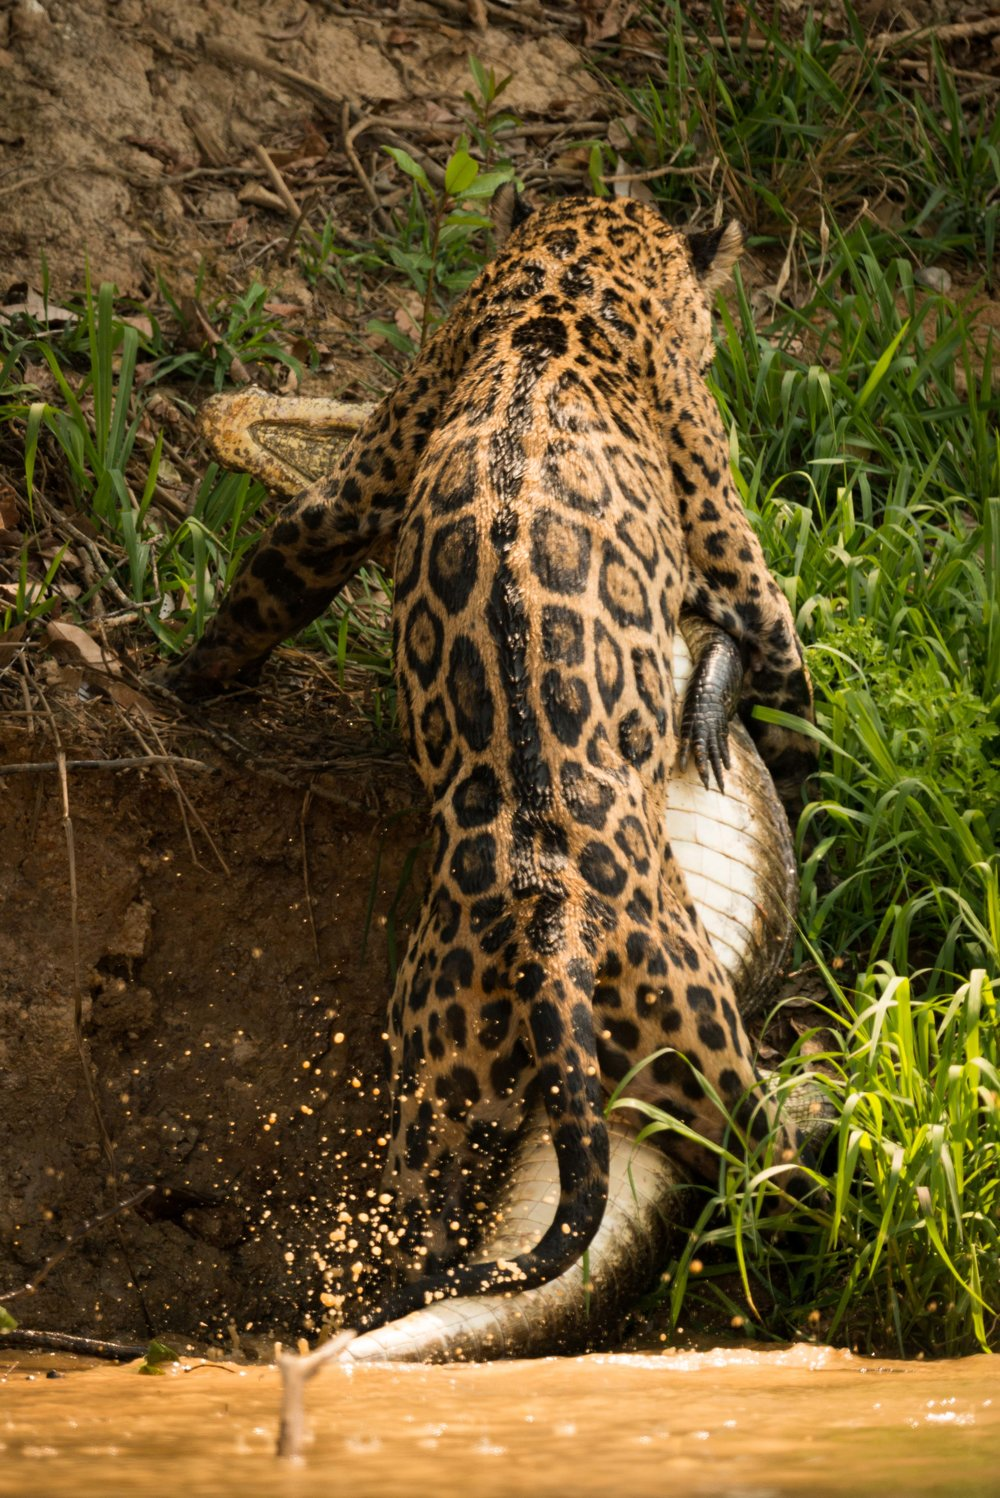 Jaguar dragging yacare caiman up river bank